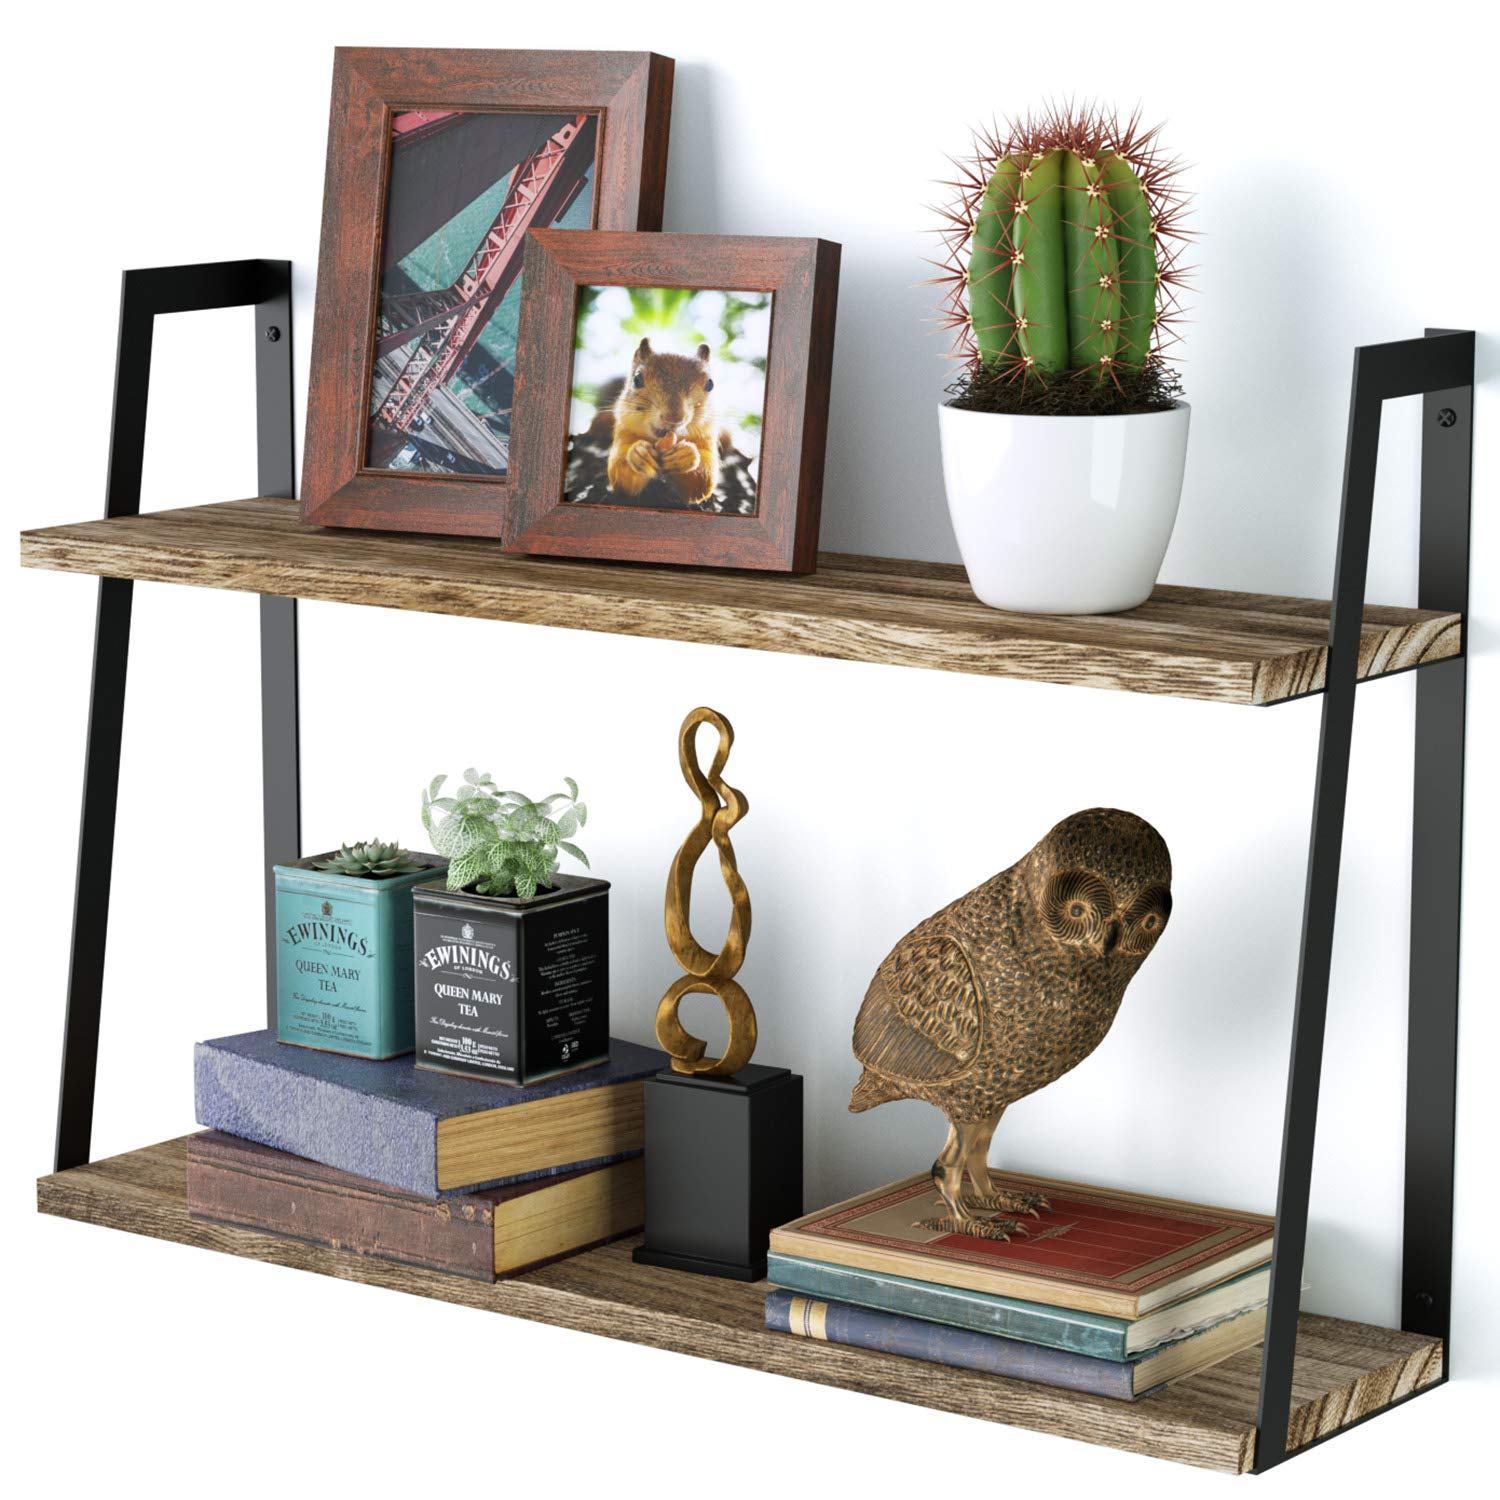 SRIWATANA 2-Tier Floating Wall Mount Shelves Book Shelves Rustic Wood Shelves Perfect Decor for Any Room by SRIWATANA